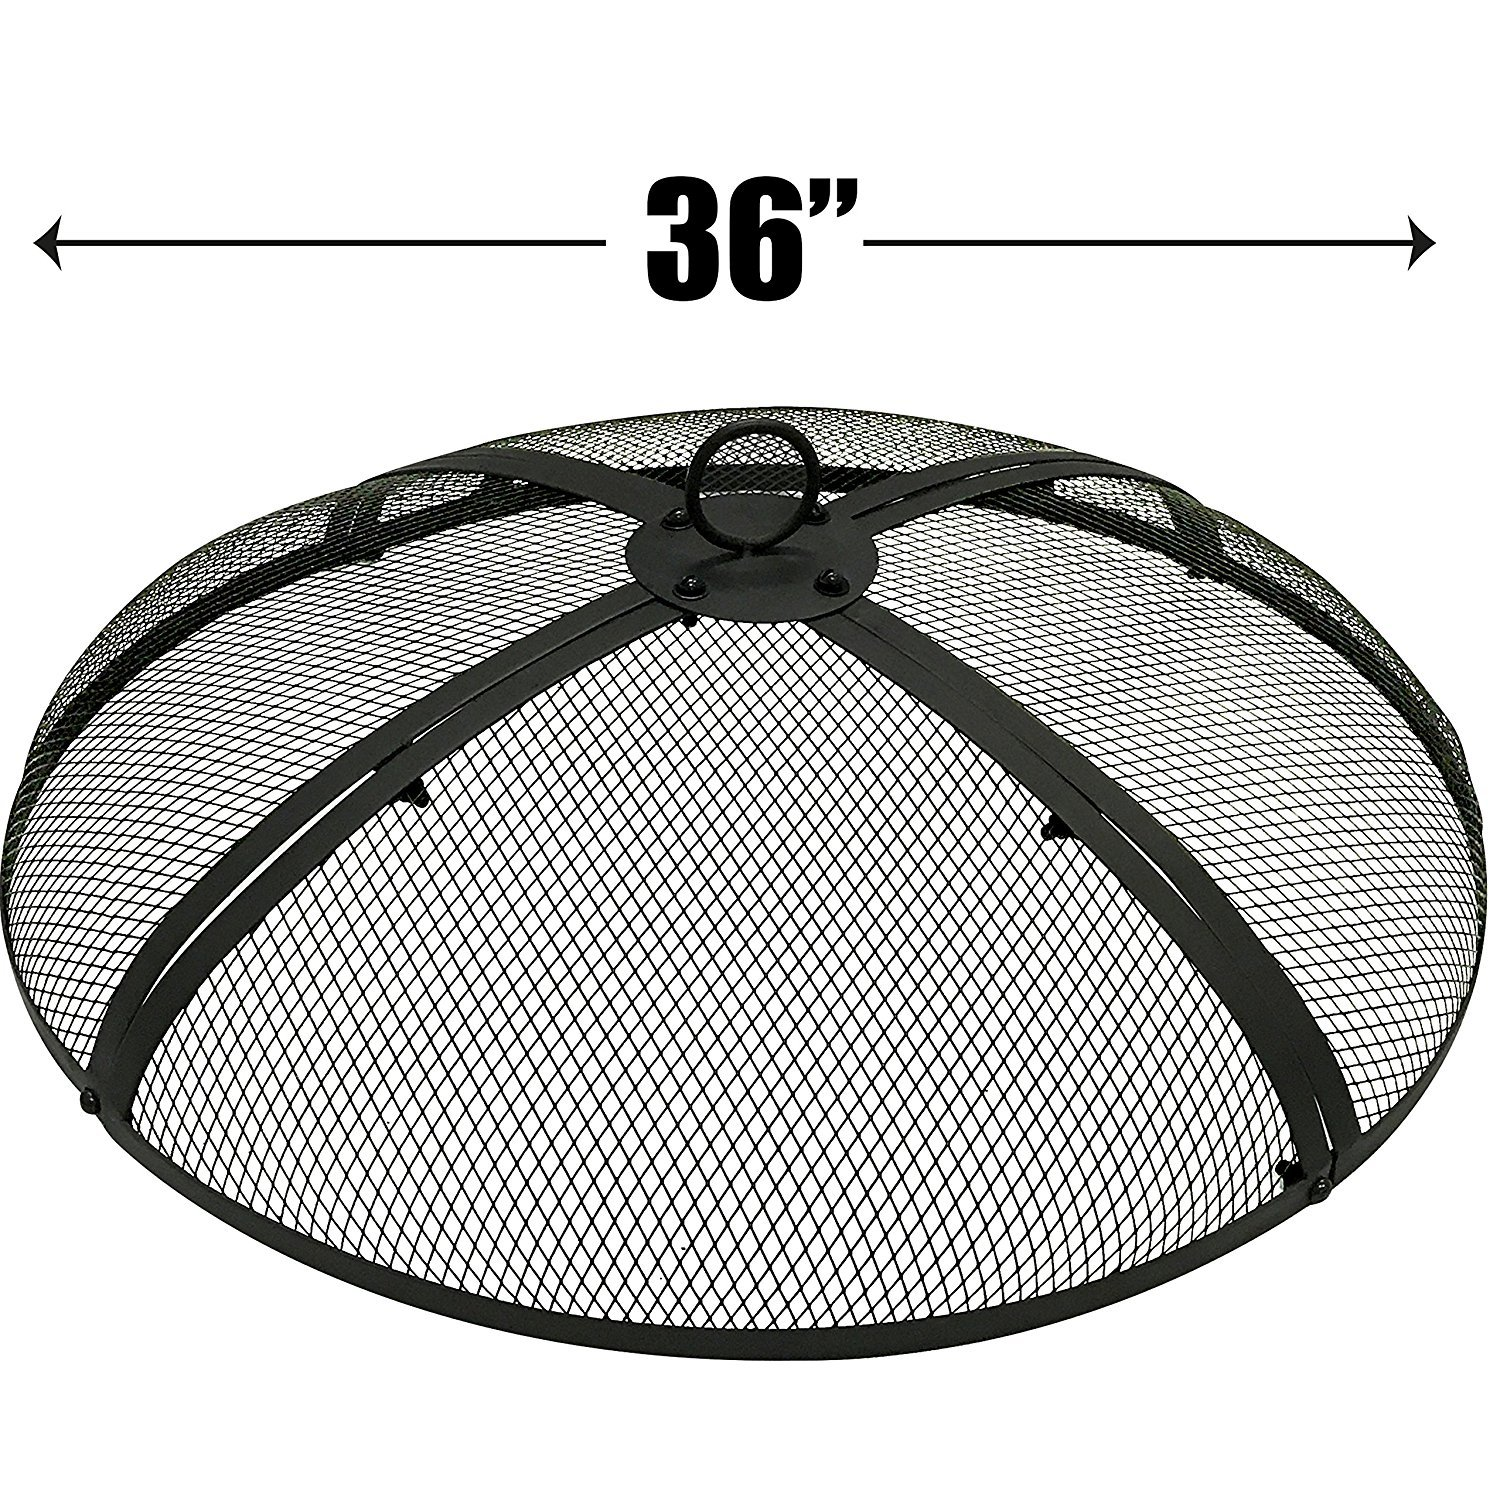 EasyGo 36 inch Round FIRE Screen - FIRE Pit Cover - FIRE Screen Protector EasyGoProducts